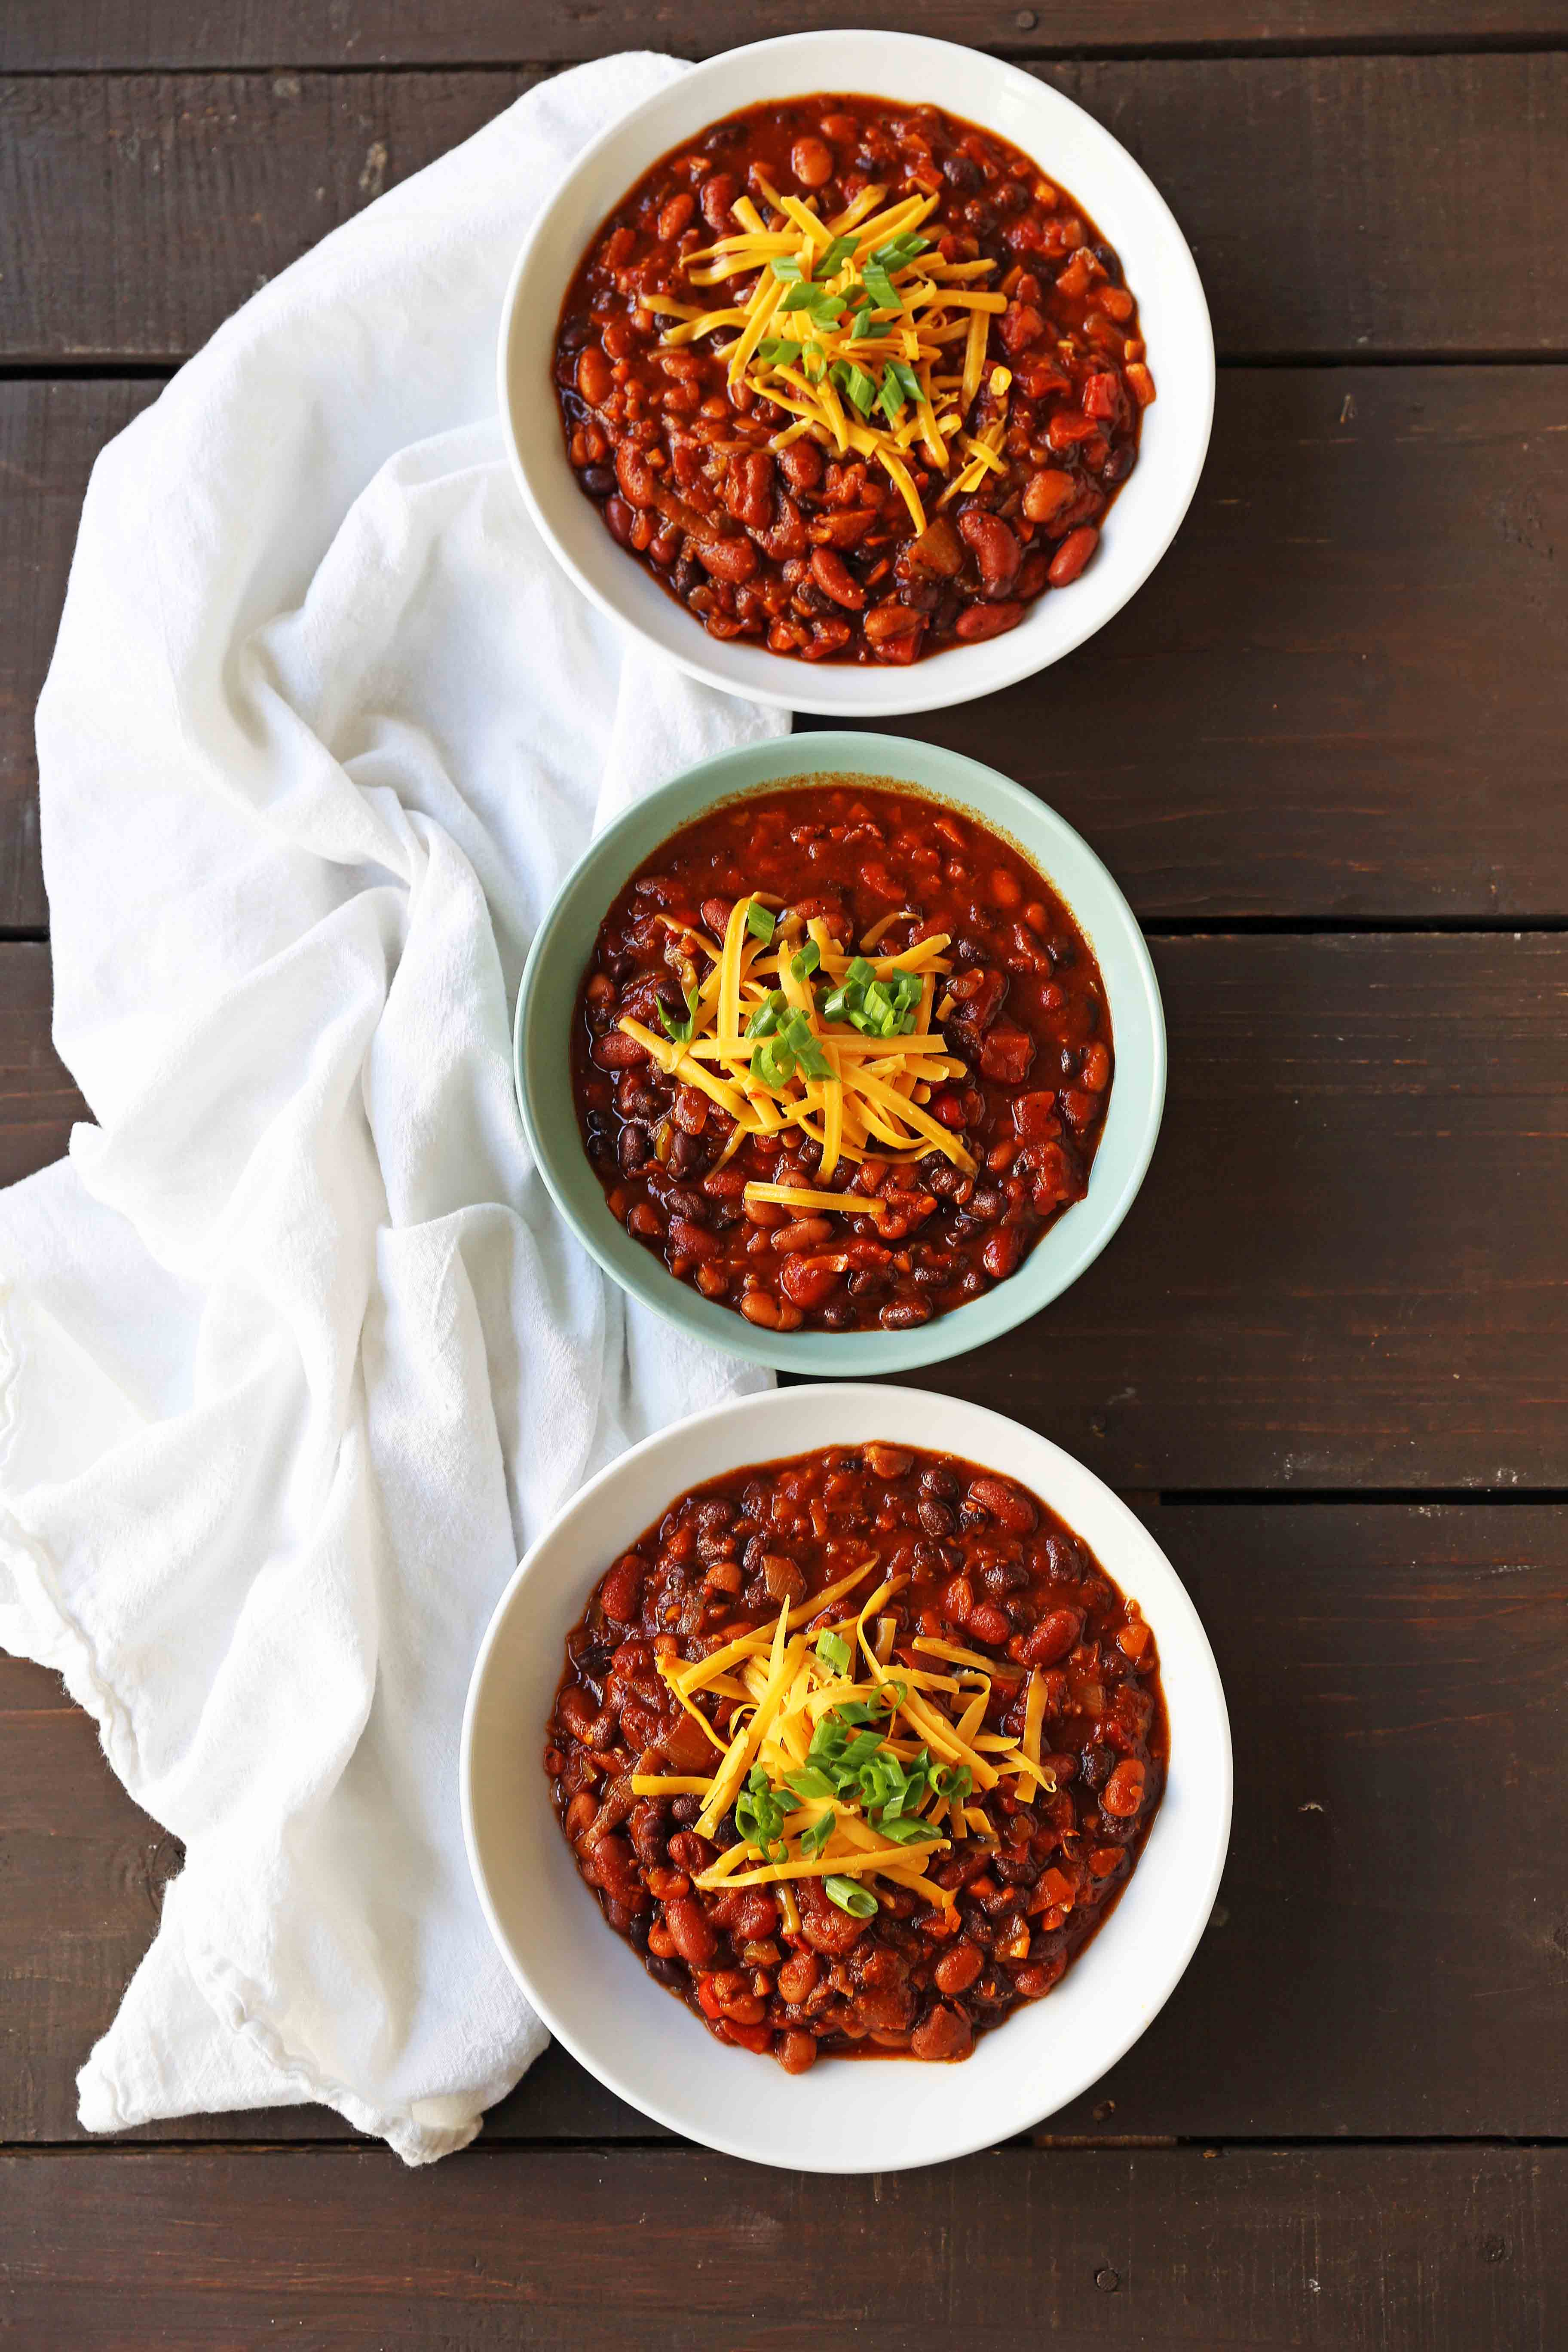 Veggie Chili Recipe. A healthy vegetable and bean filled chili in a spicy tomato sauce. The perfect Veggie Chili recipe and you won't even miss the meat! www.modernhoney.com #veggiechili #veggiechilirecipe #vegetarian #chili